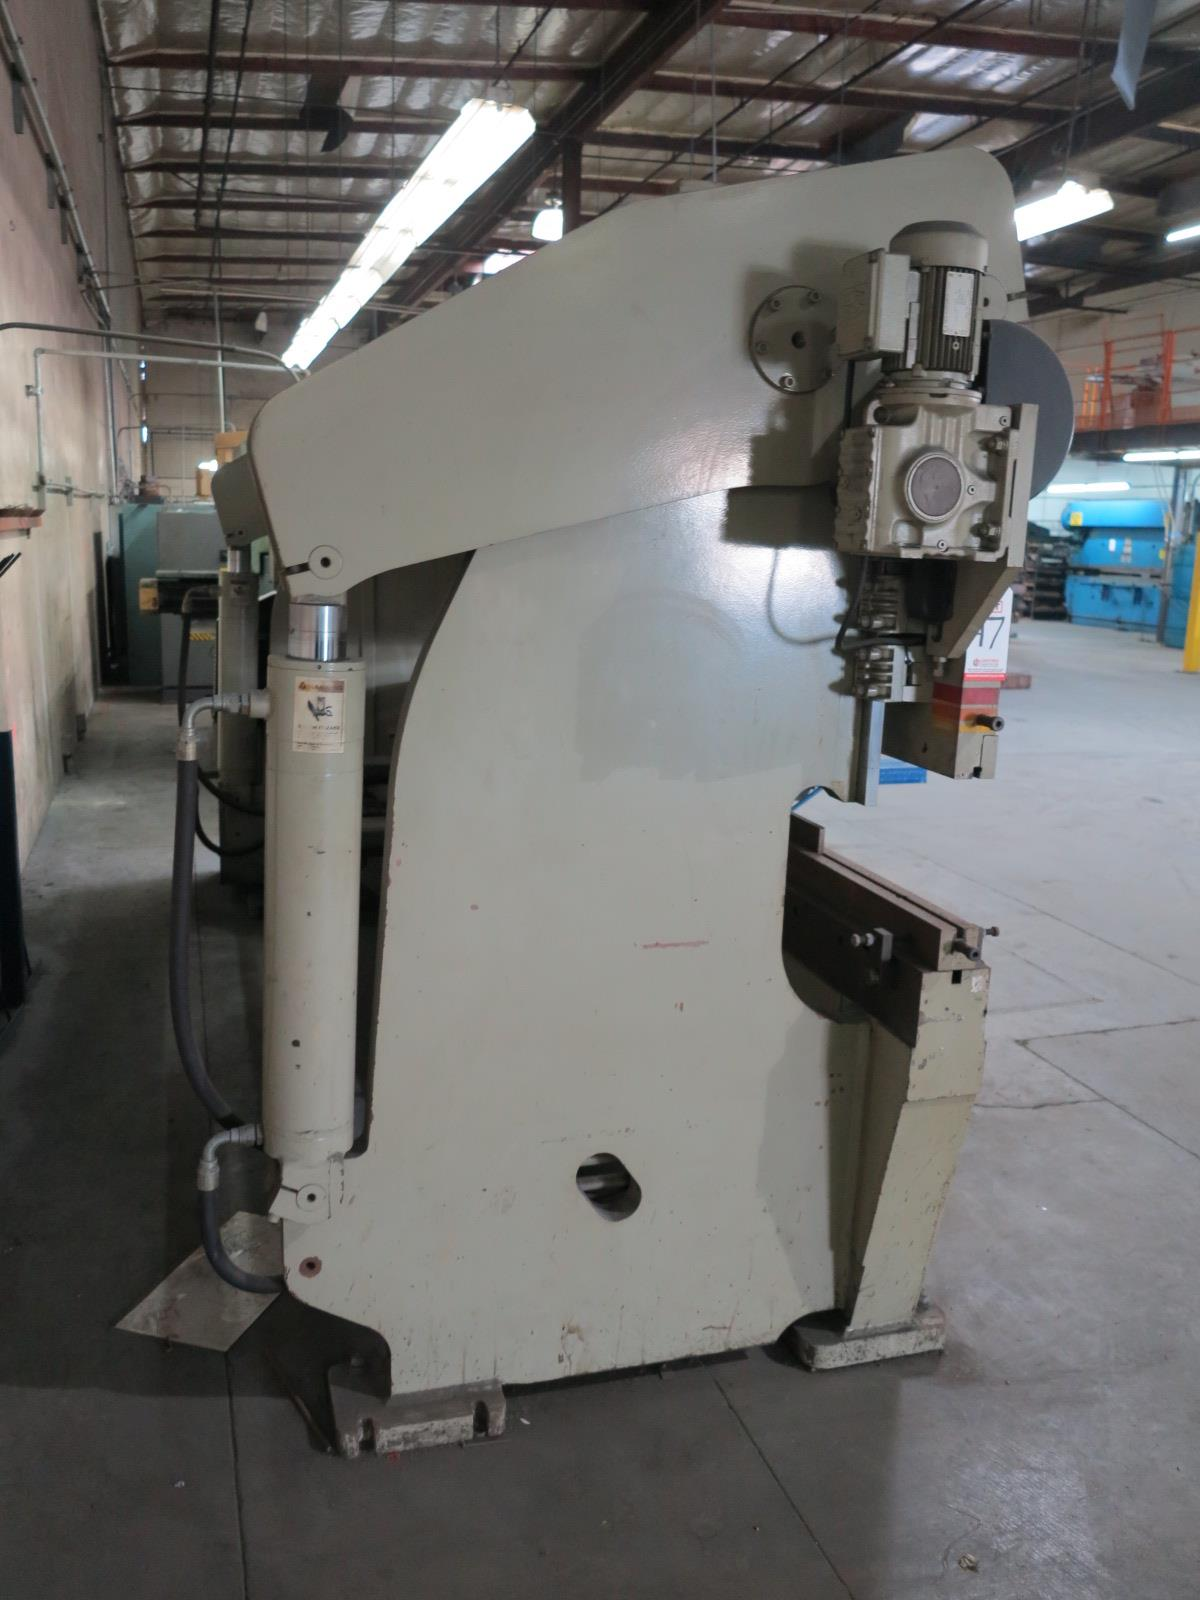 1999 ACCURPRESS BRAKE, MODEL 7017512, 175-TON X 12', E&S CONTROL, CNC BACKGAUGE, SUPPORTS, S/N 5758 - Image 6 of 7